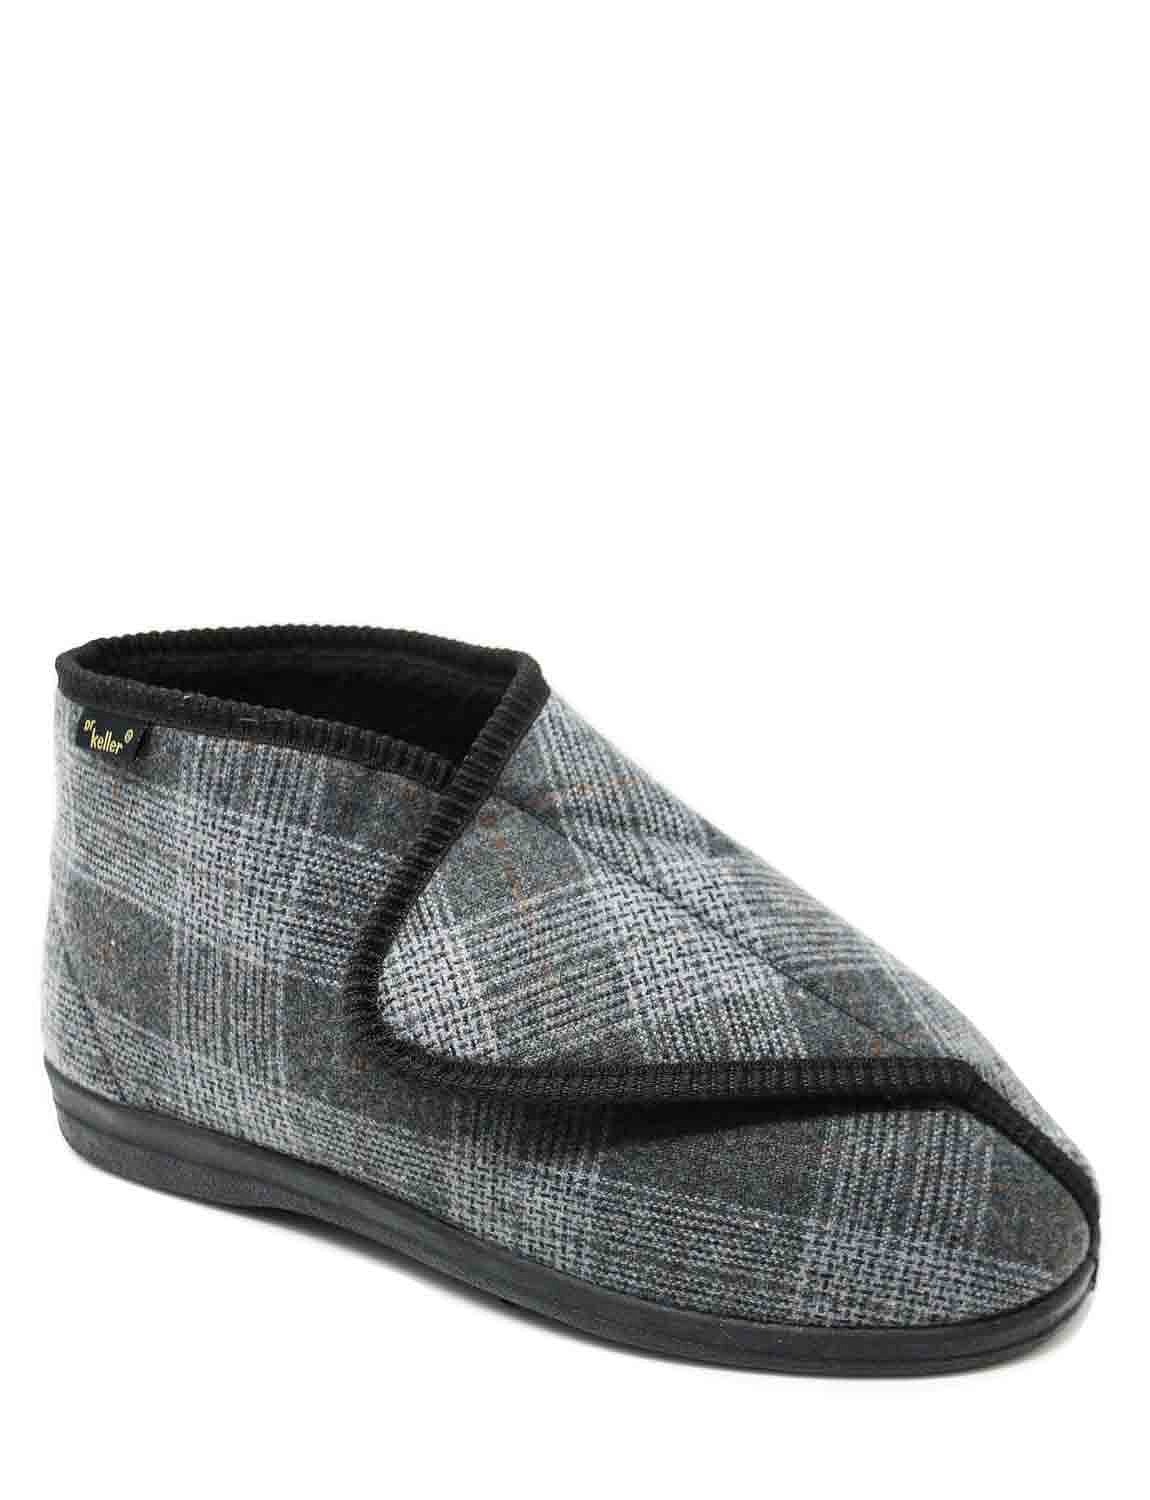 Dr Keller Wide Fit Touch Fastening Boot Slipper - Black